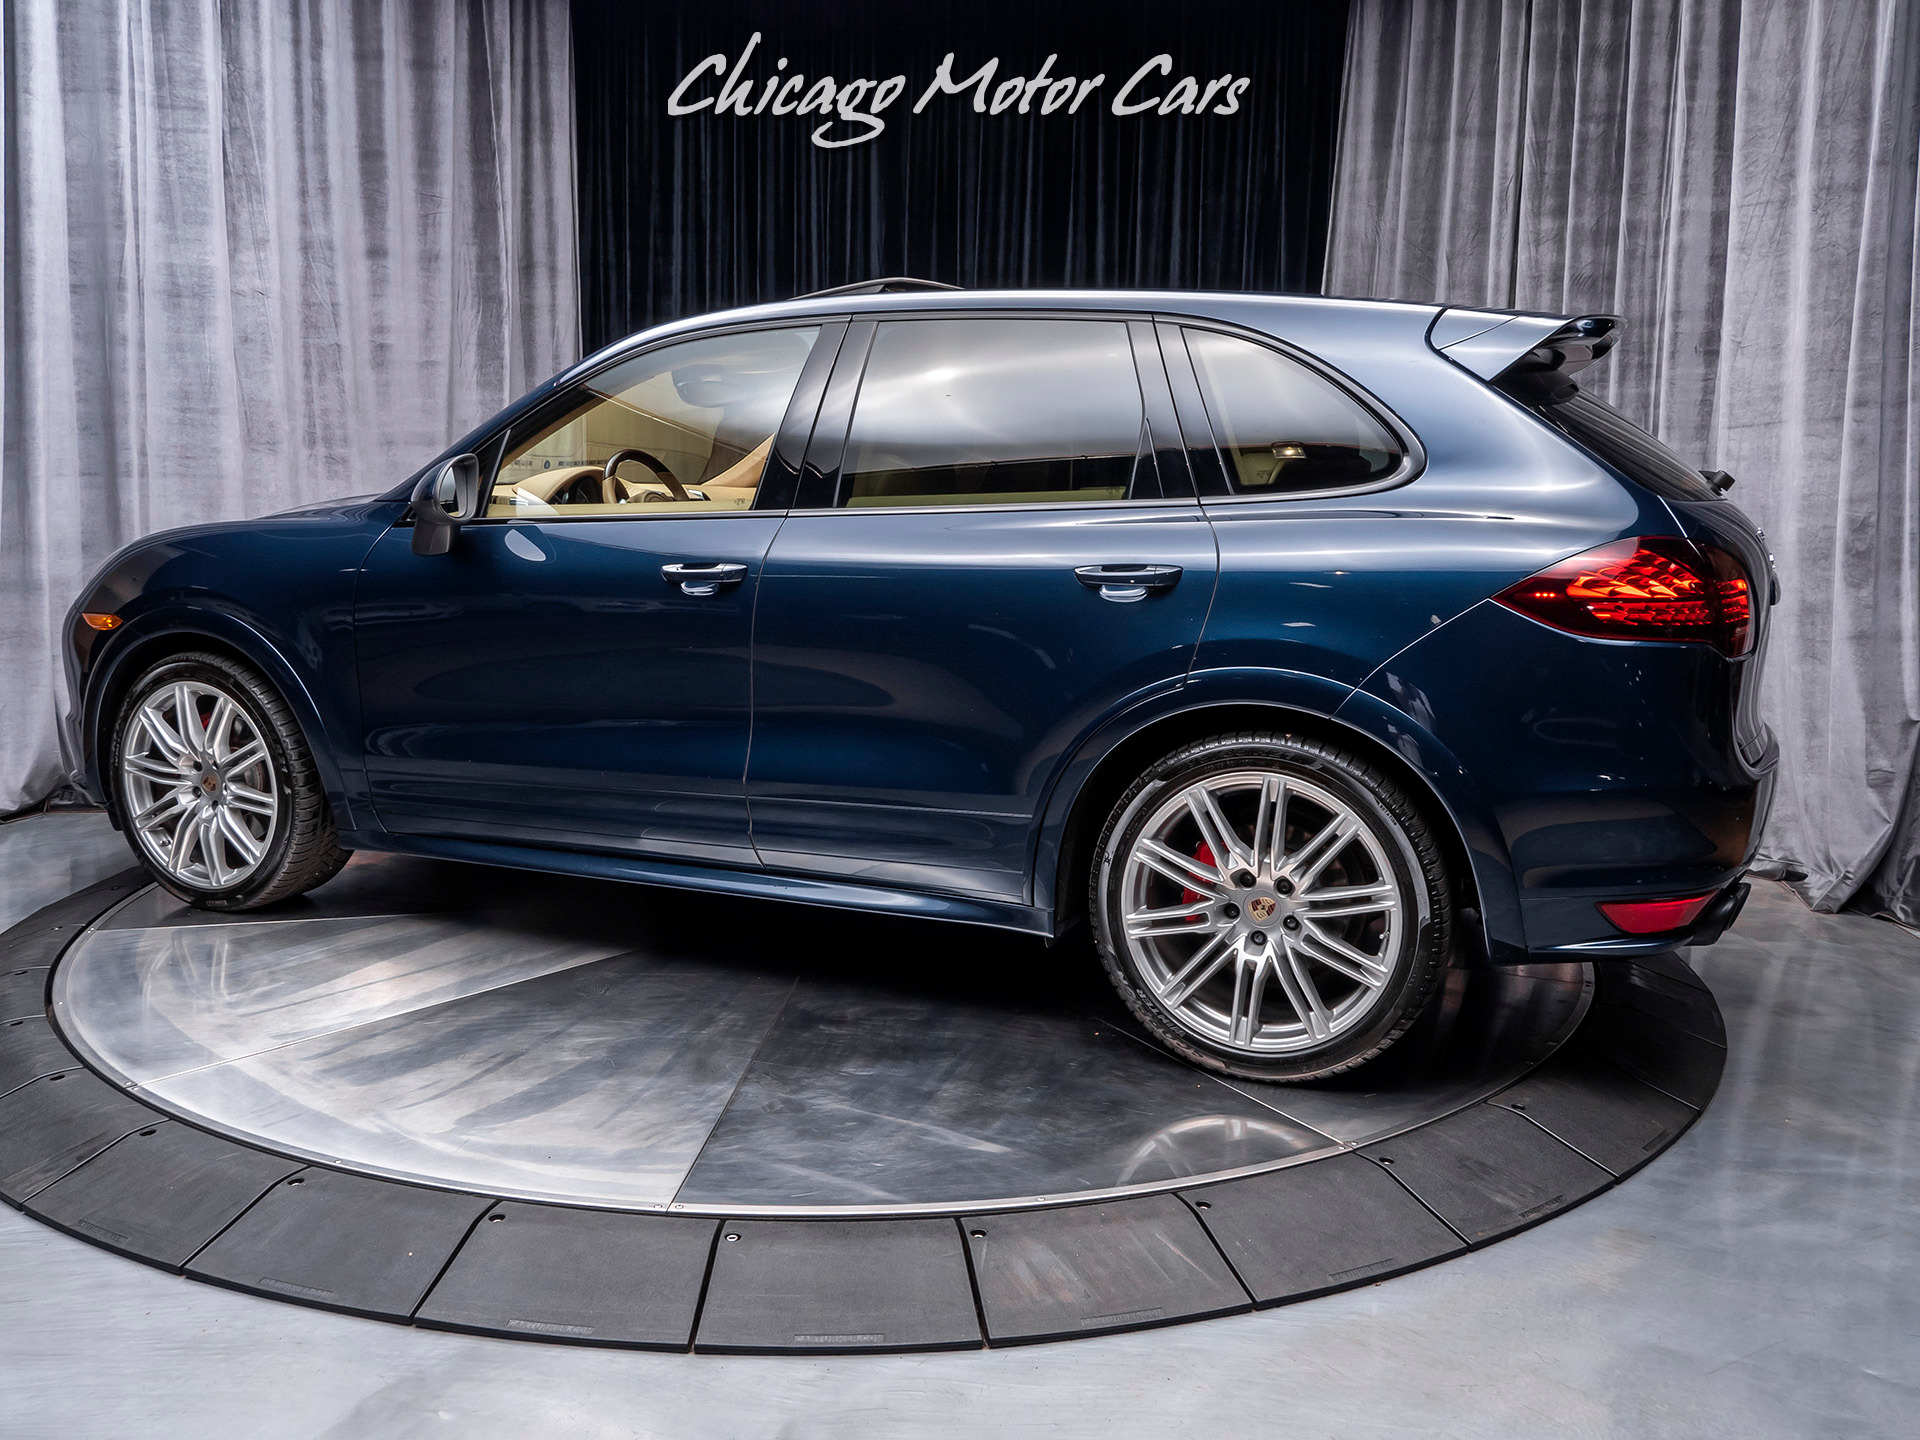 Used 2013 Porsche Cayenne Gts Suv Awd Msrp 99k For Sale Special Pricing Chicago Motor Cars Stock 15910a